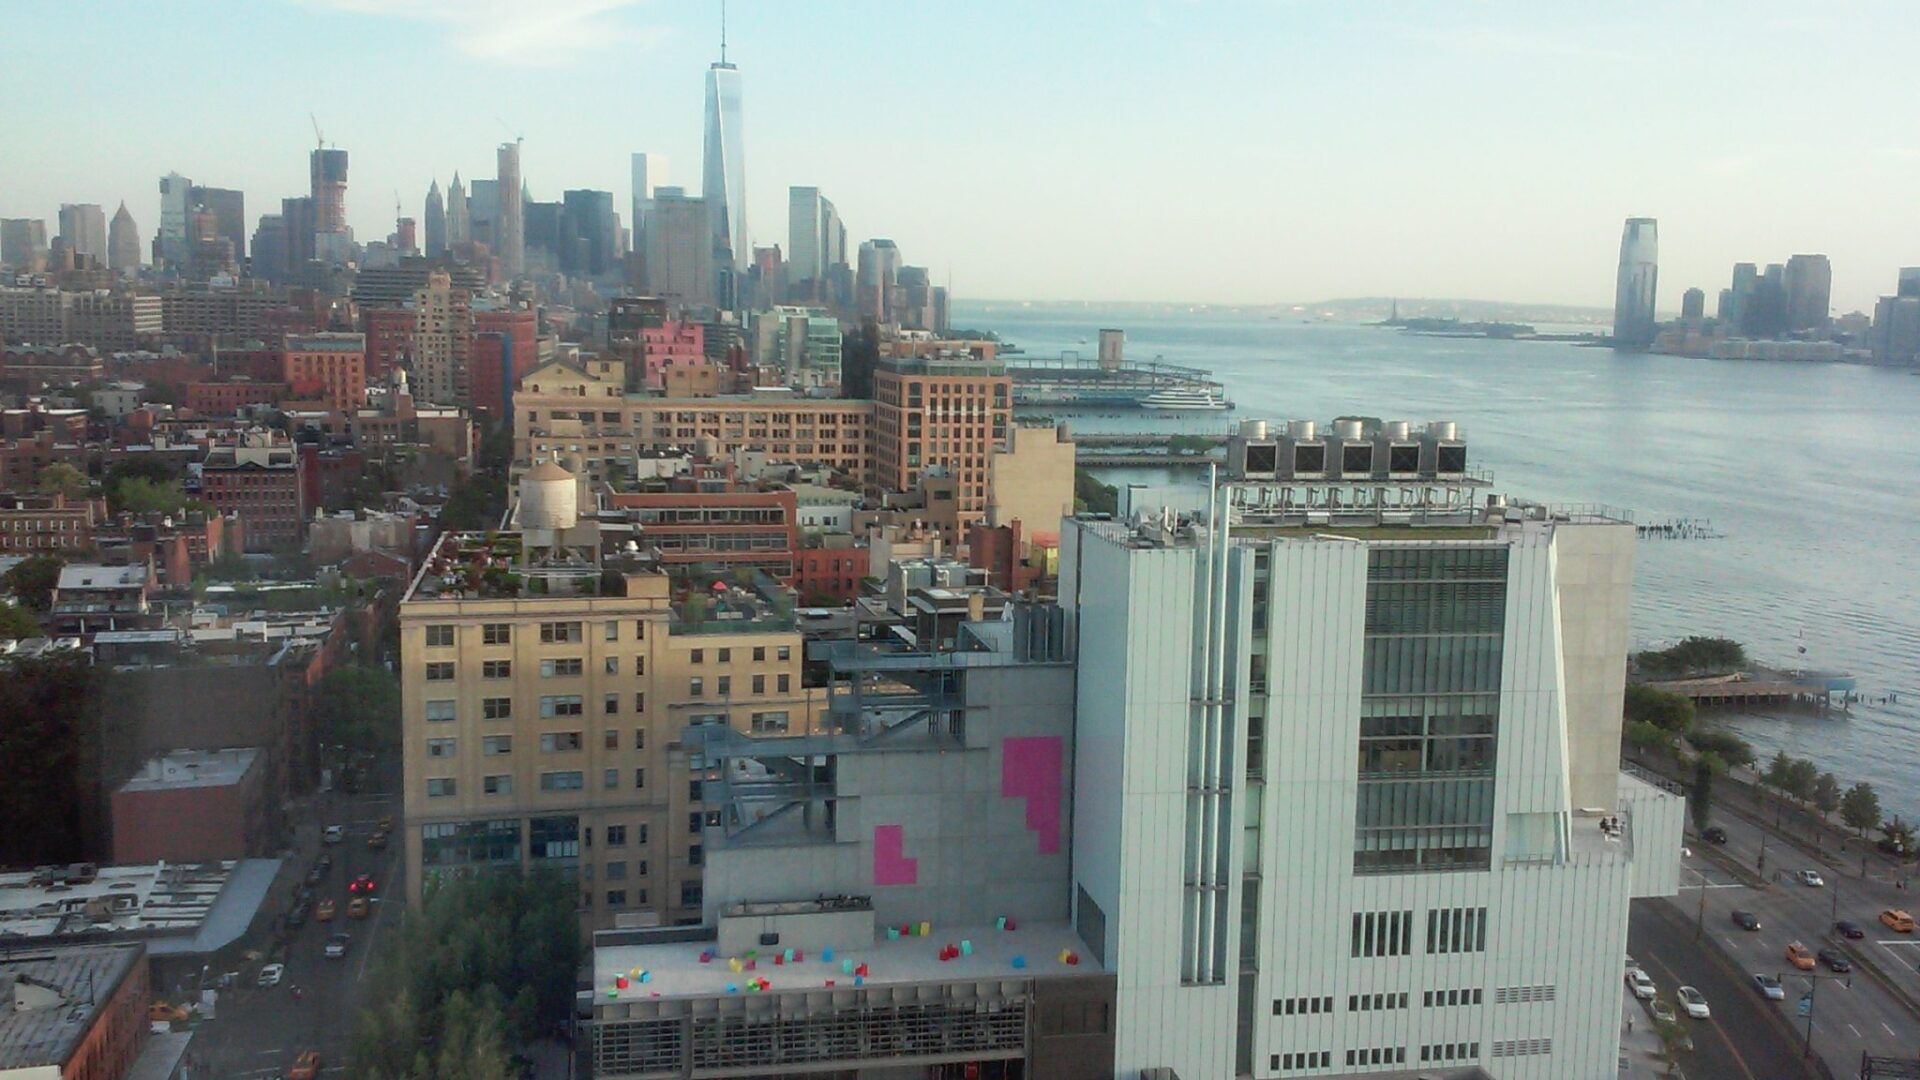 View with the Whitney Museum from the Standard Hotel. Photo: Ilaria M. P. Barzaghi.